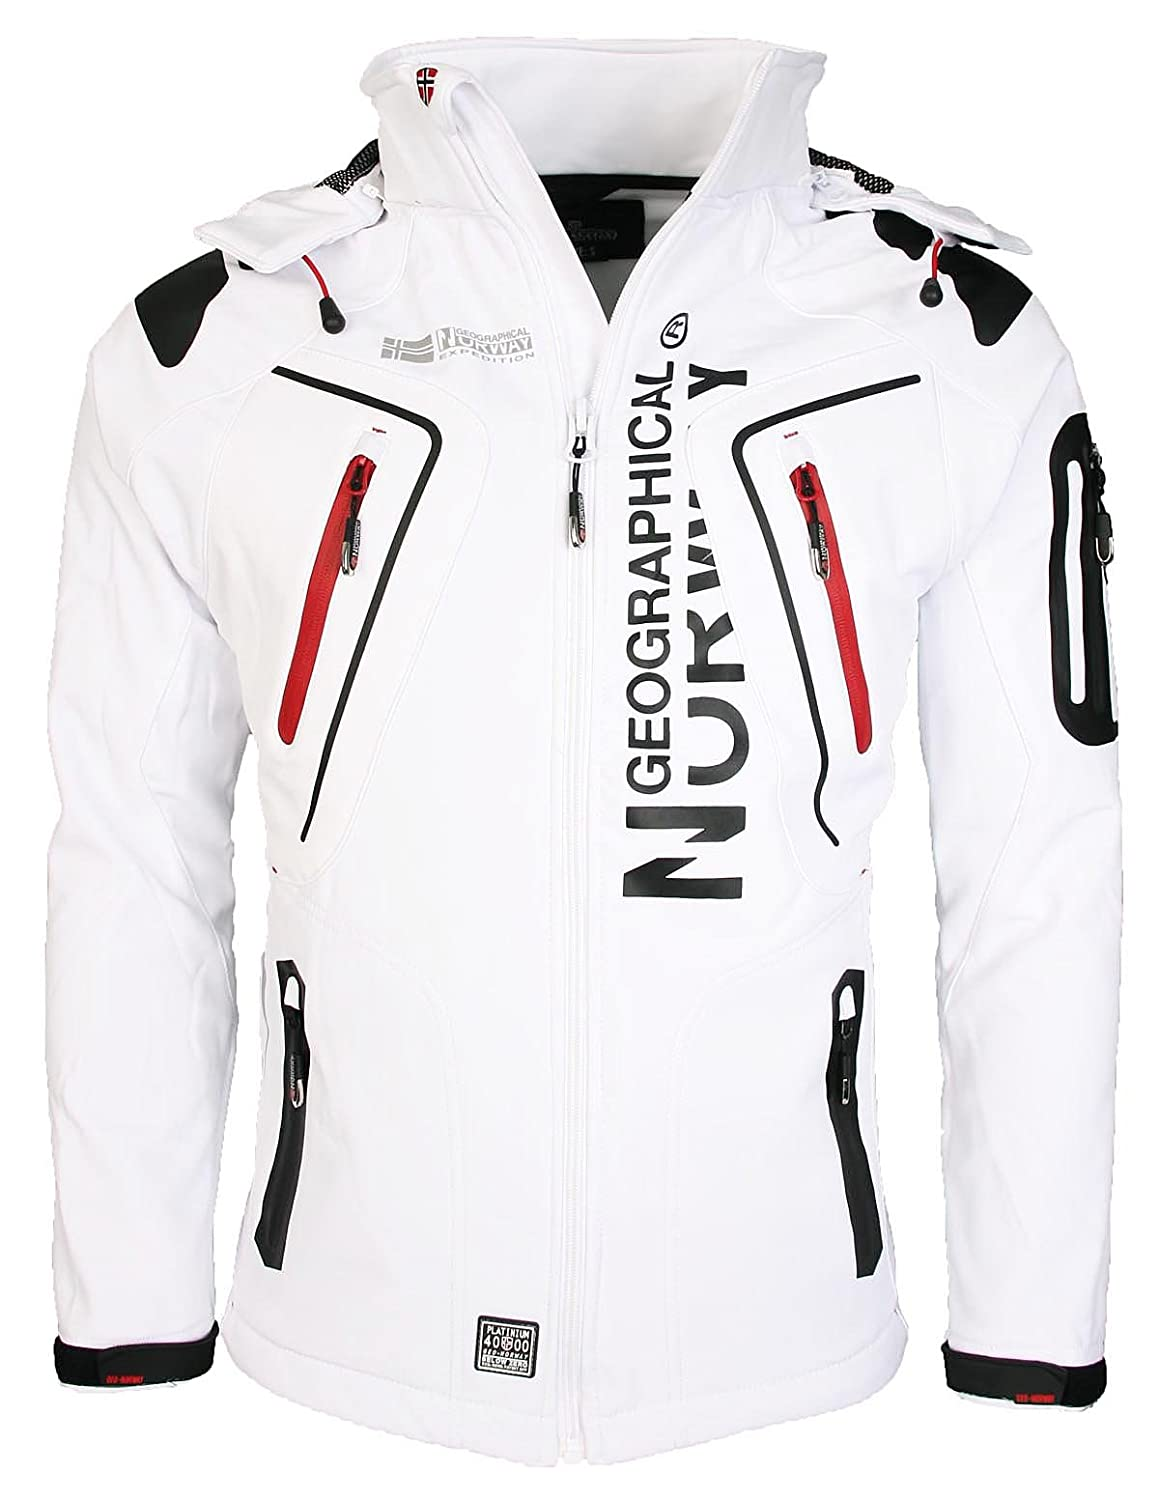 Geographical Norway Giacca Softshell Impermeabile da Uomo